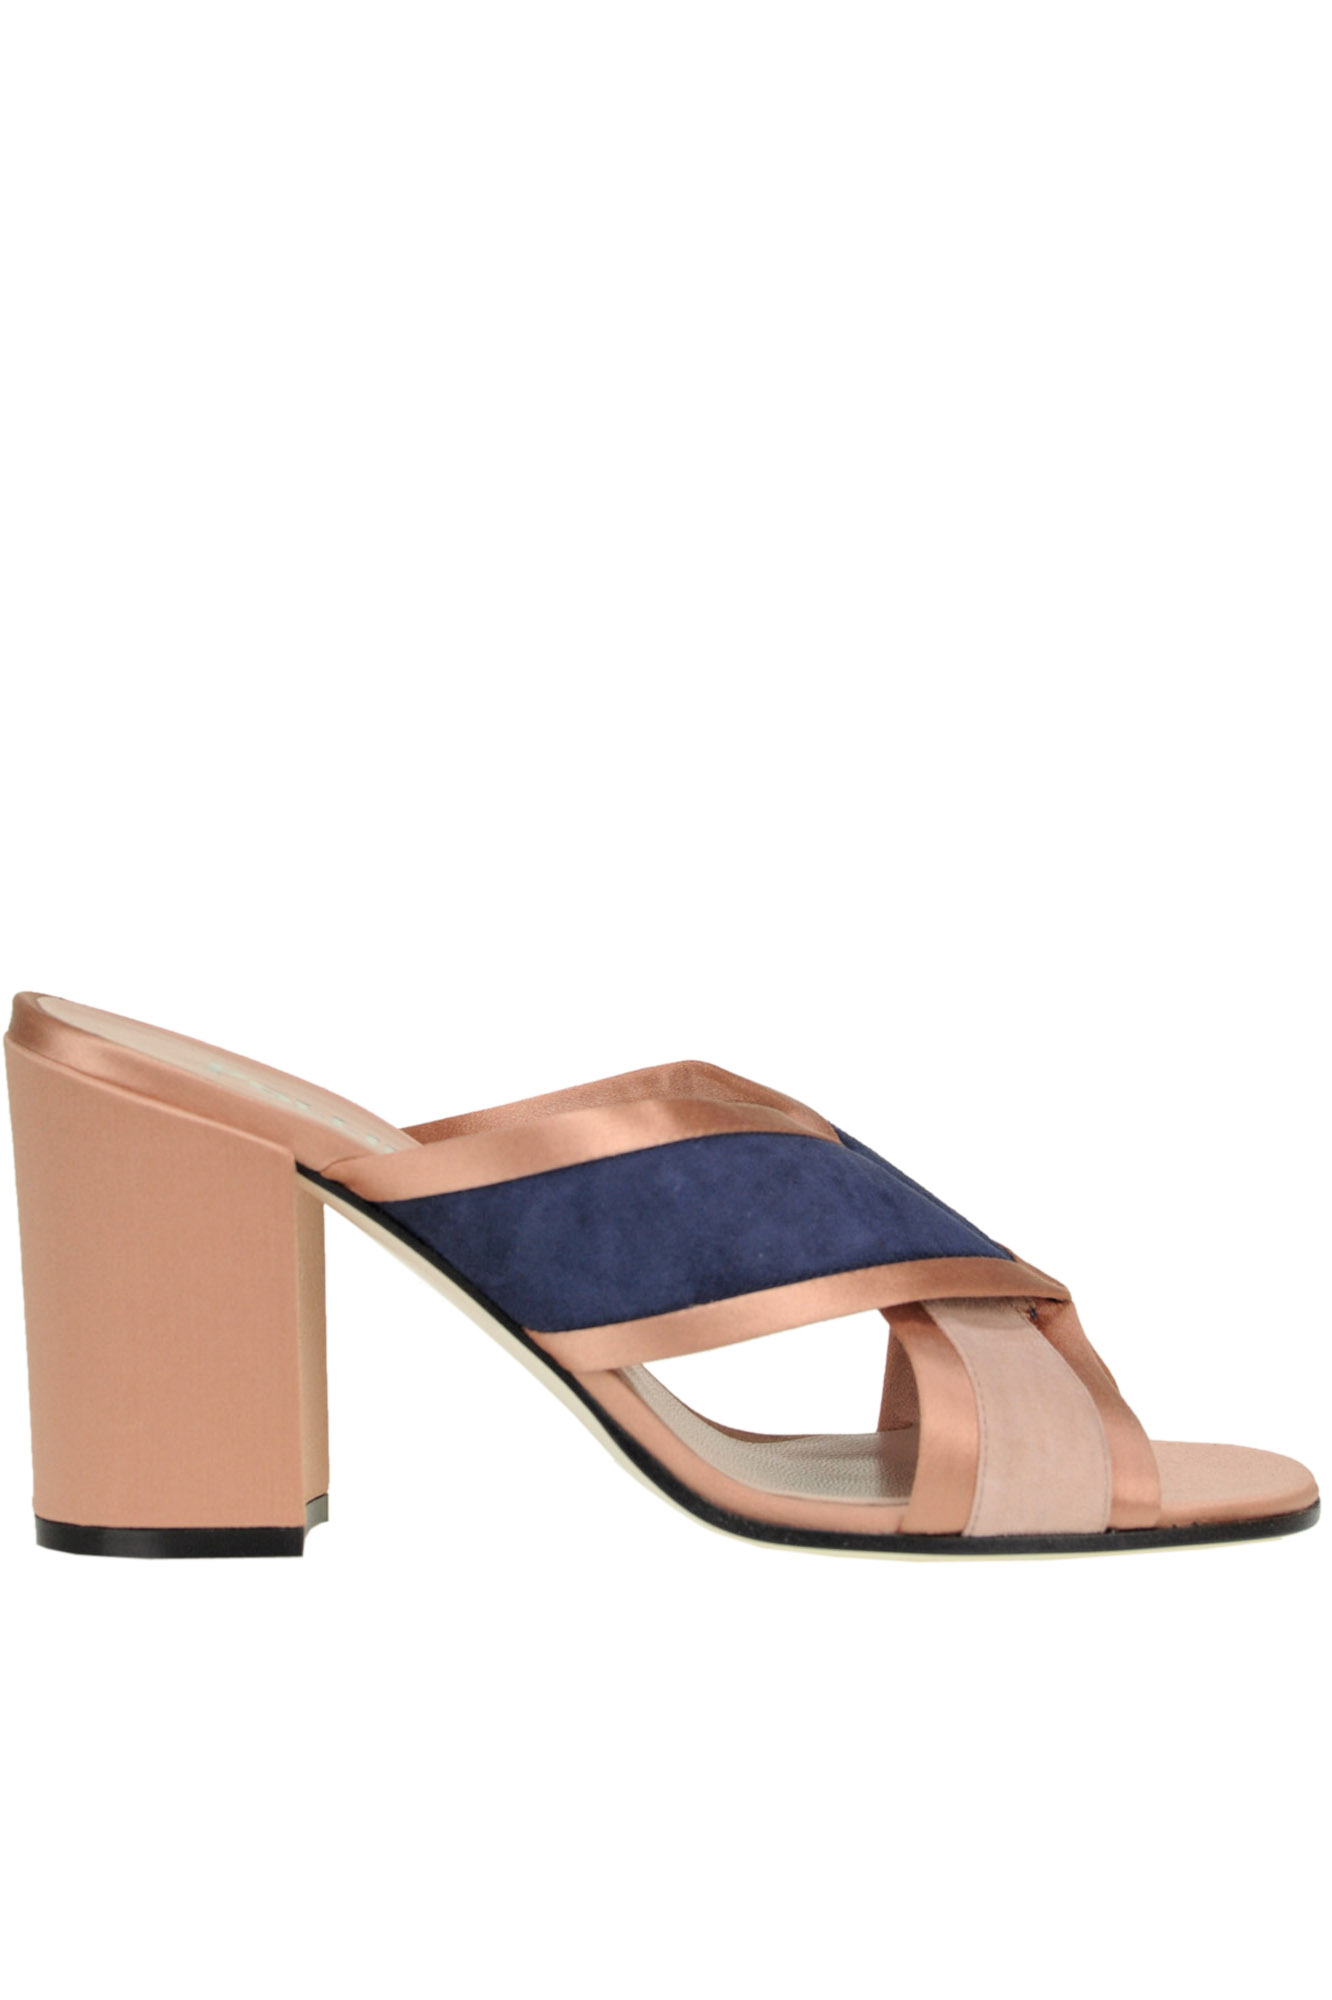 Pollini Satin And Suede Sandals In Neutral